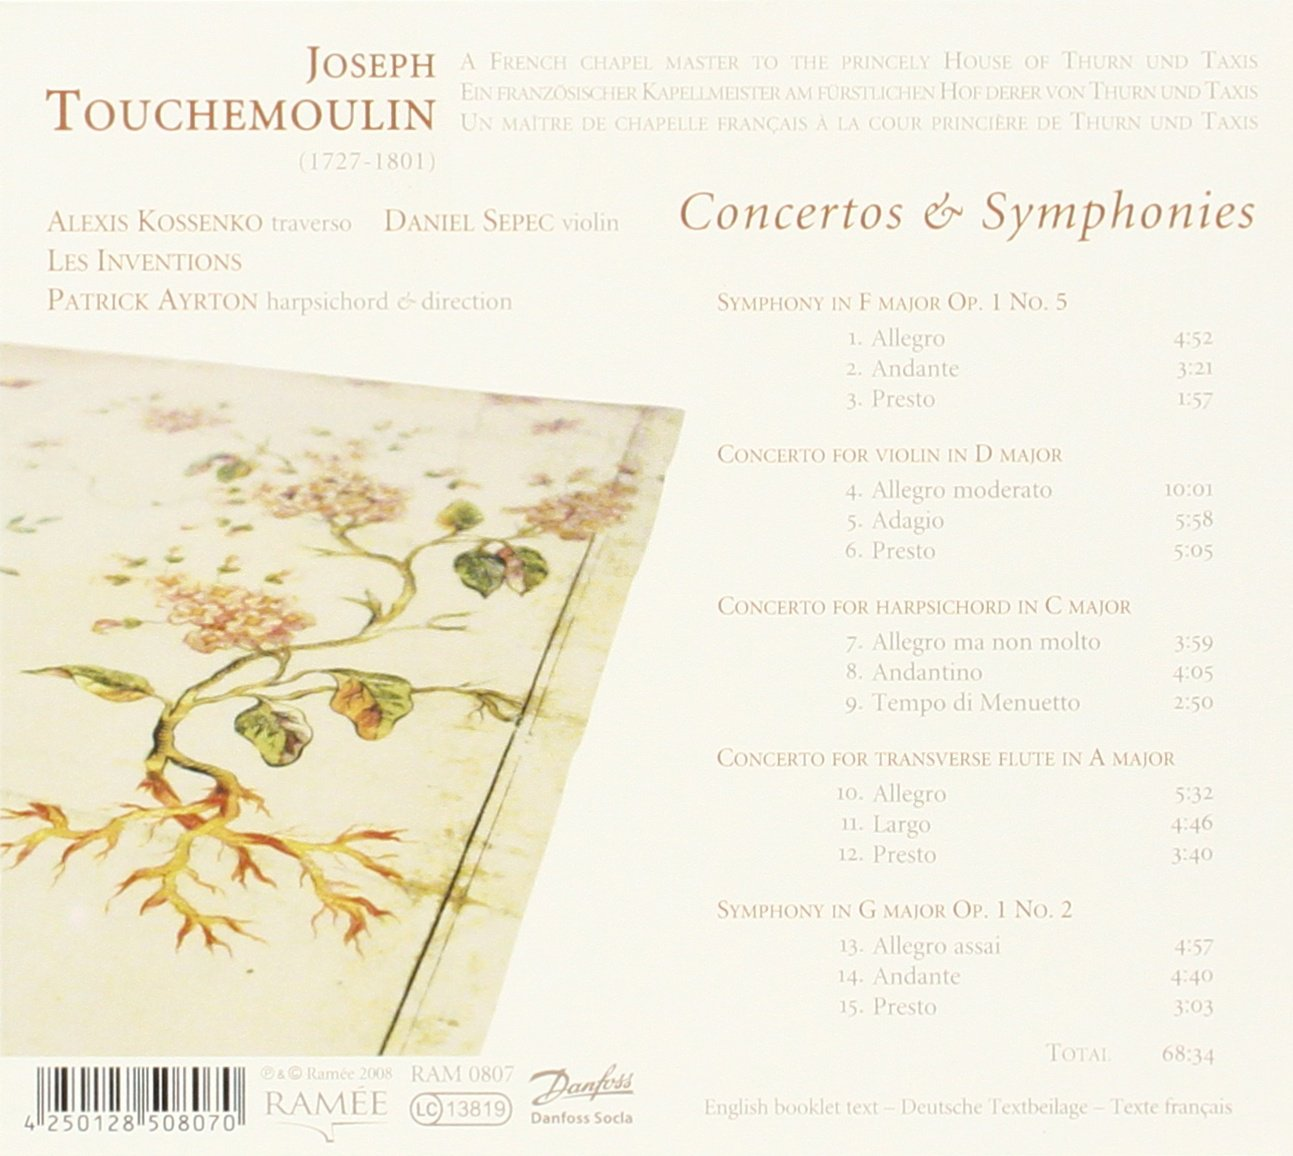 Touchemoulin: Concertos & Symphonies by Ramee